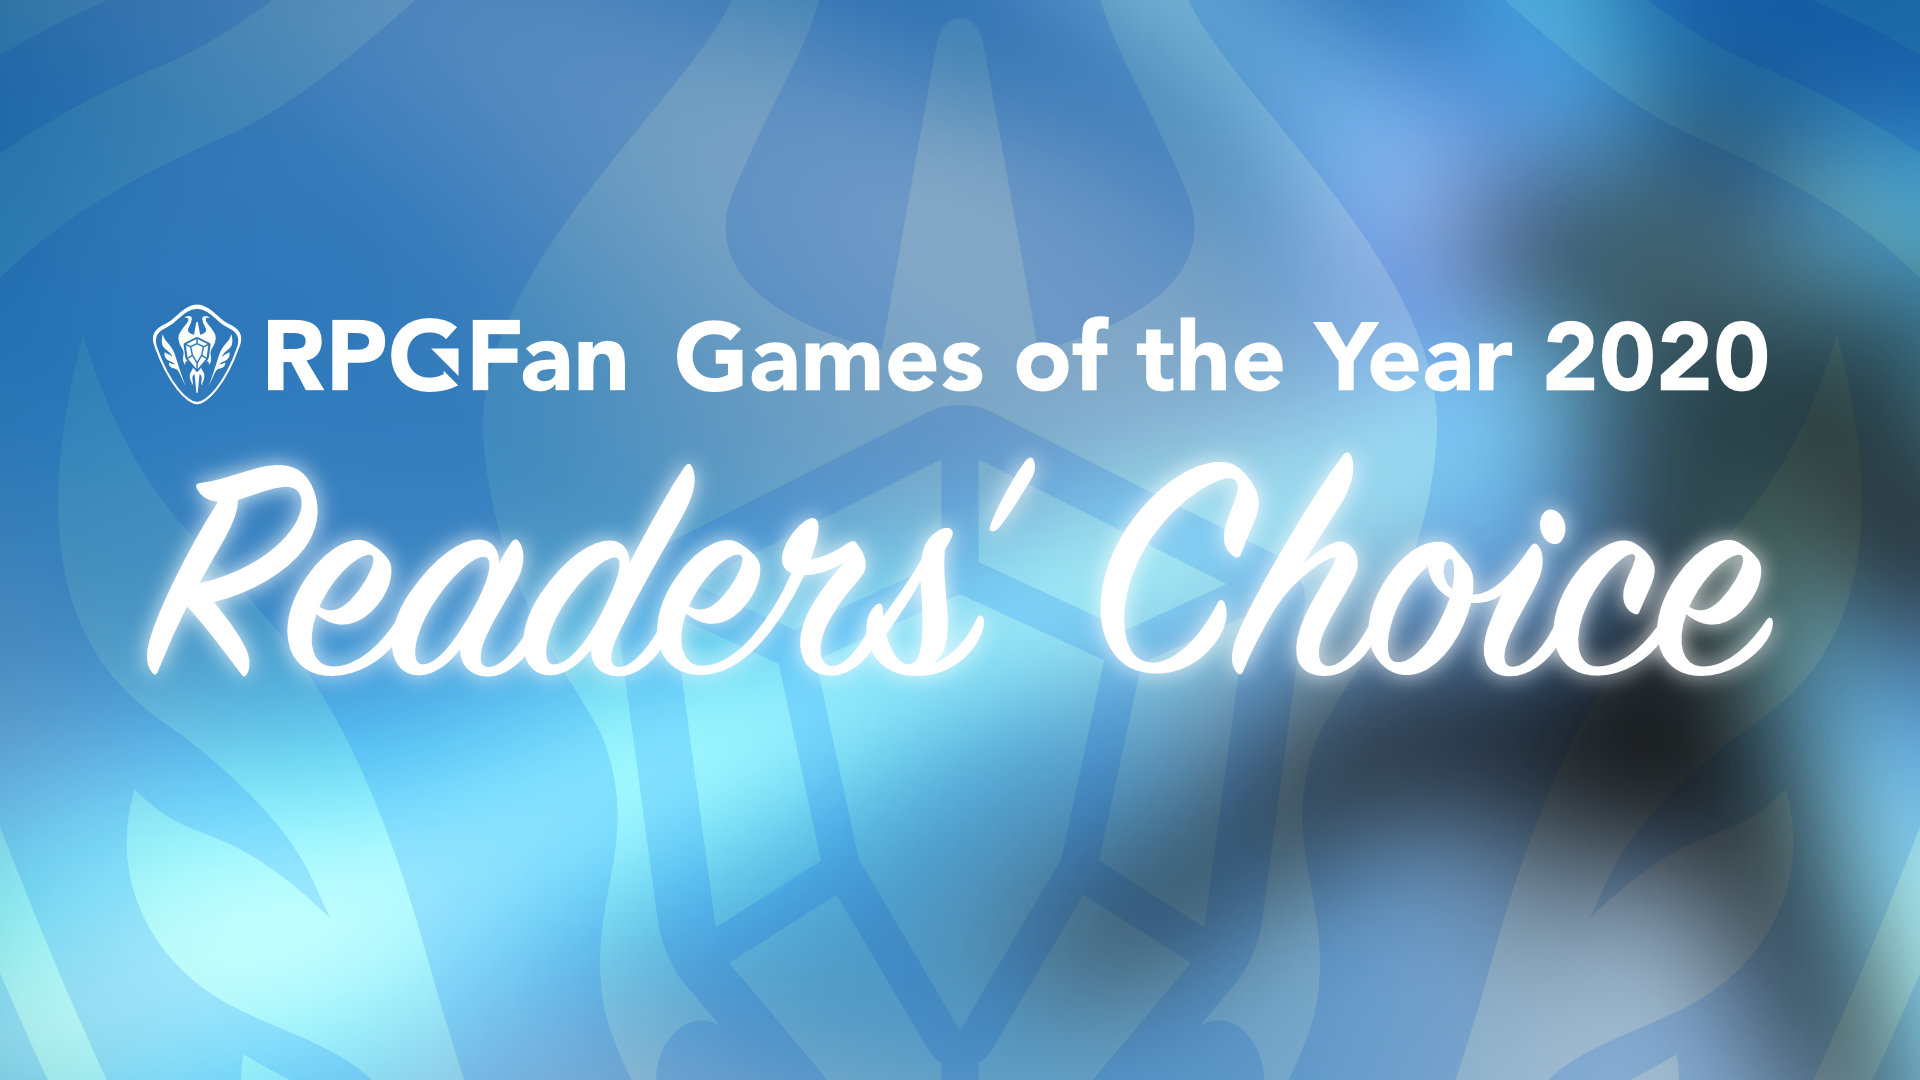 Games of the Year 2020 Readers' Choice with Text